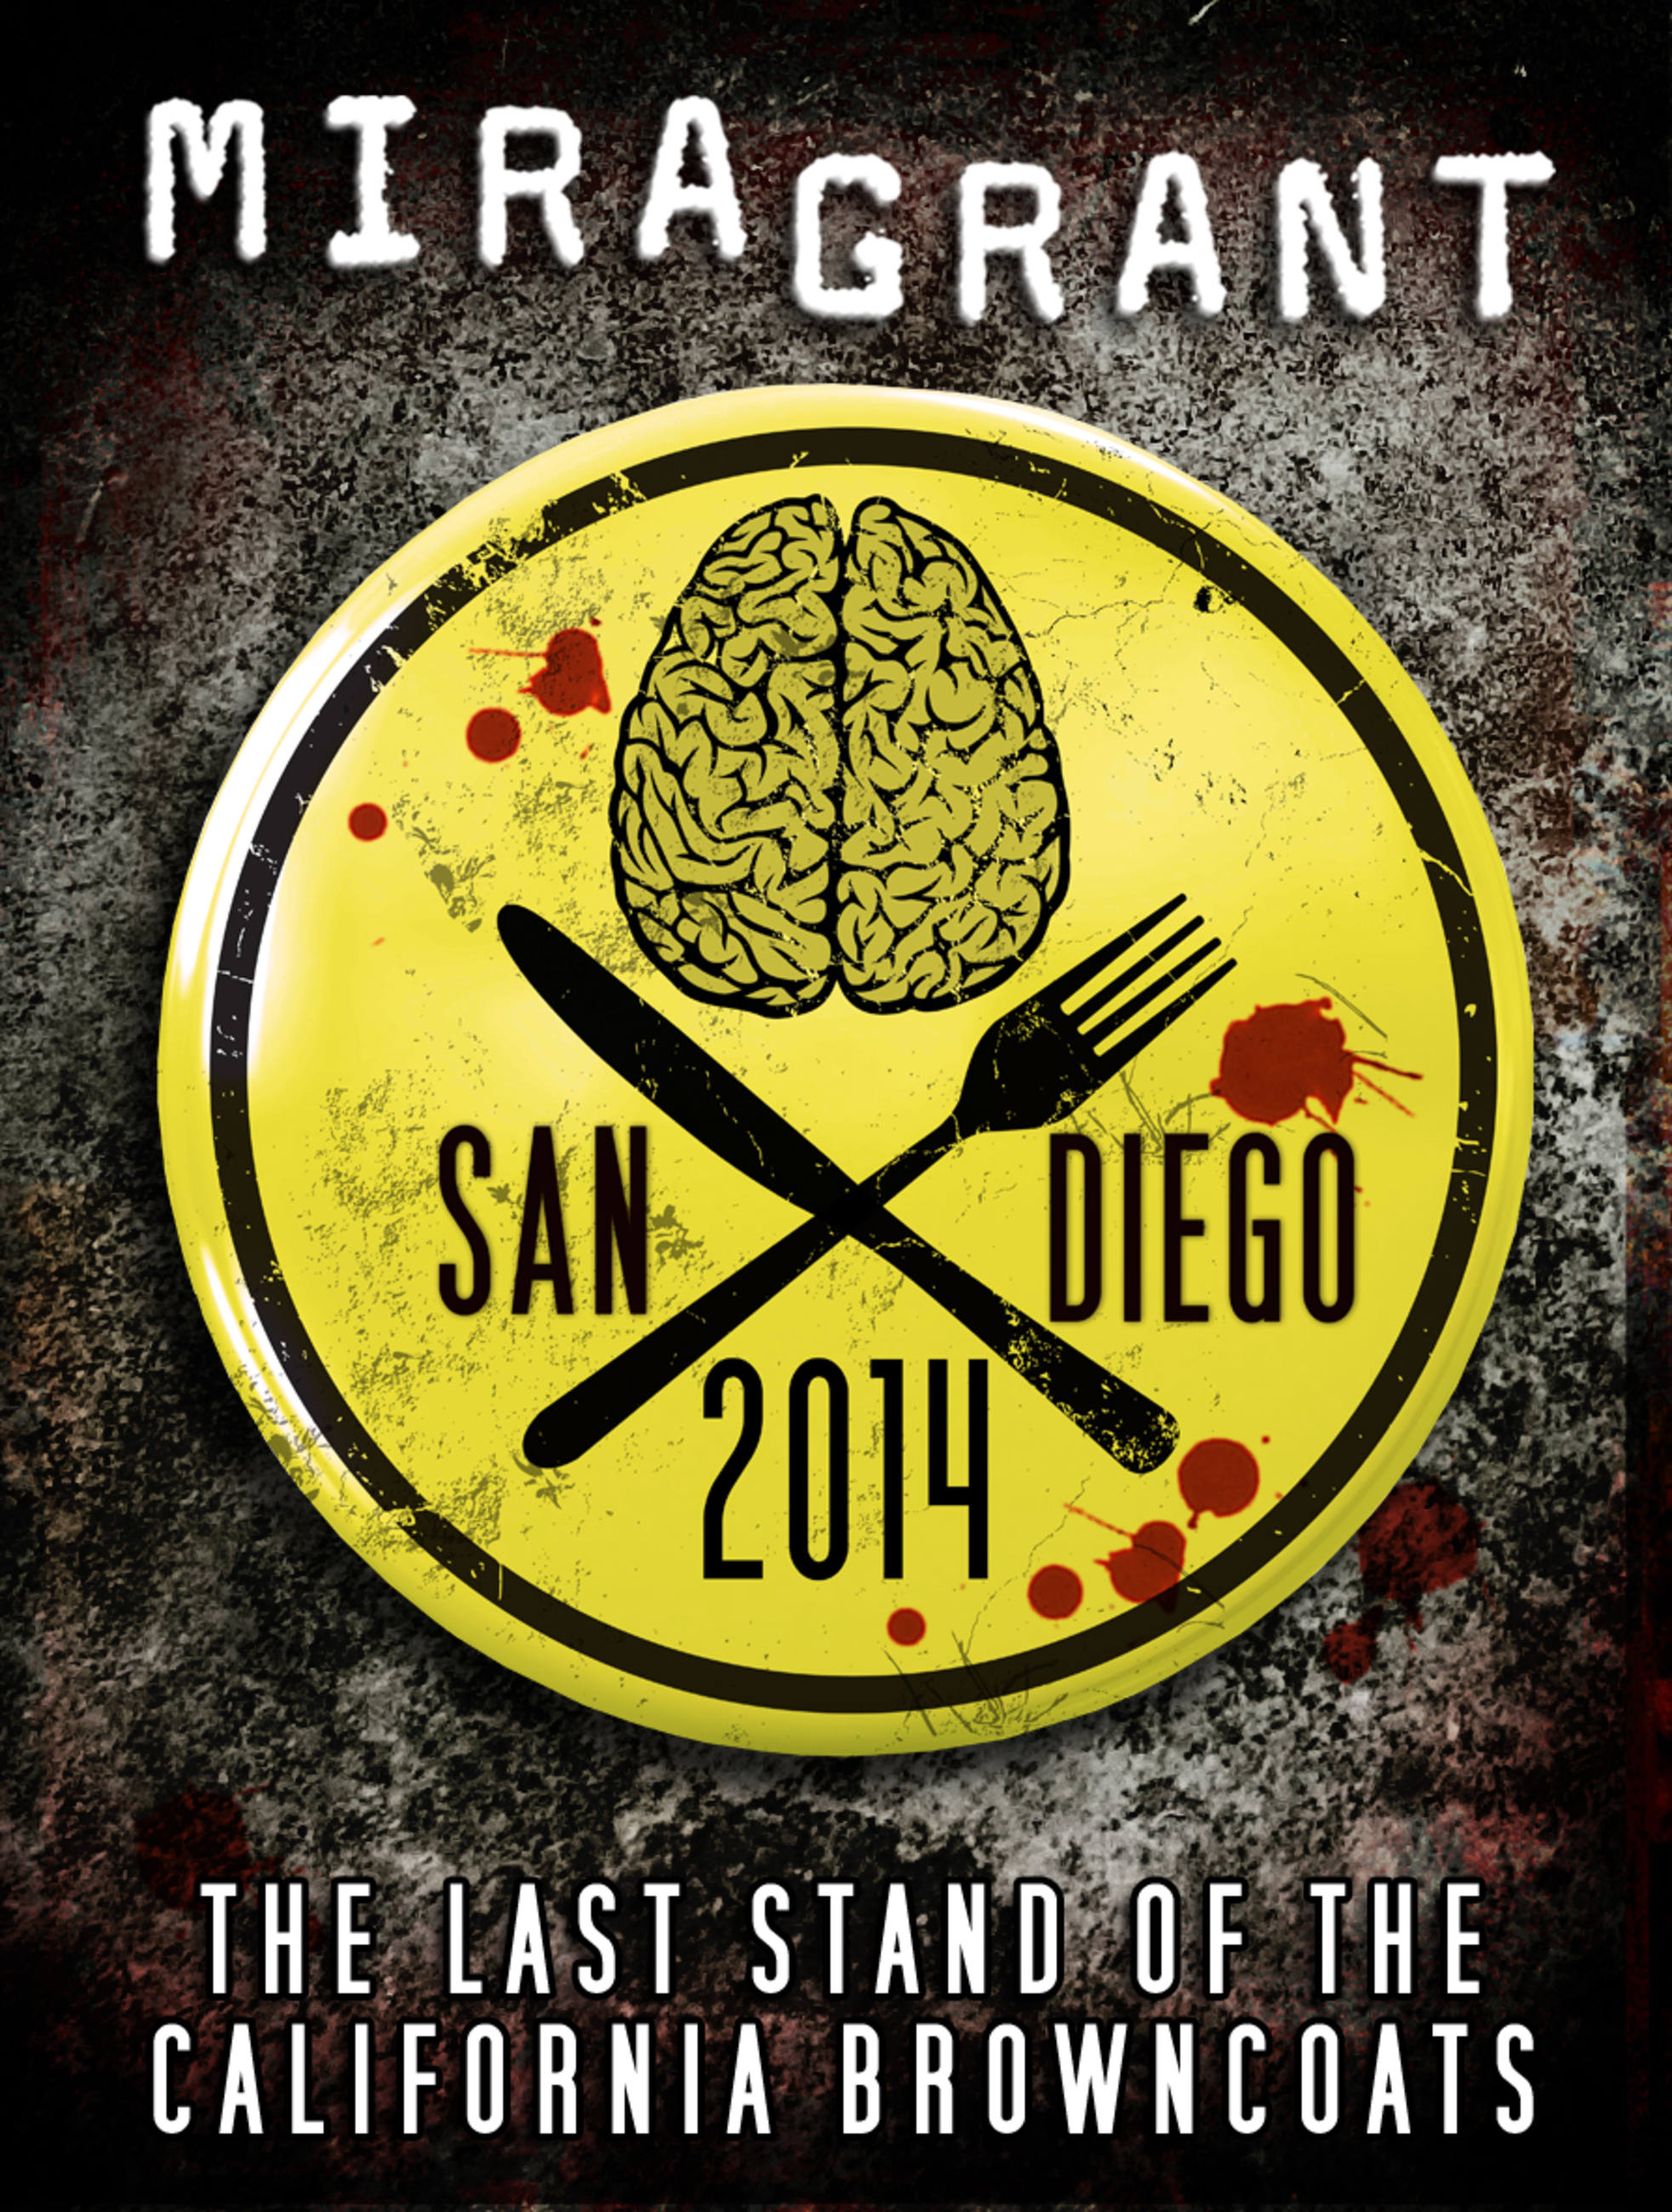 Cover Image of San Diego 2014: The Last Stand of the California Browncoats